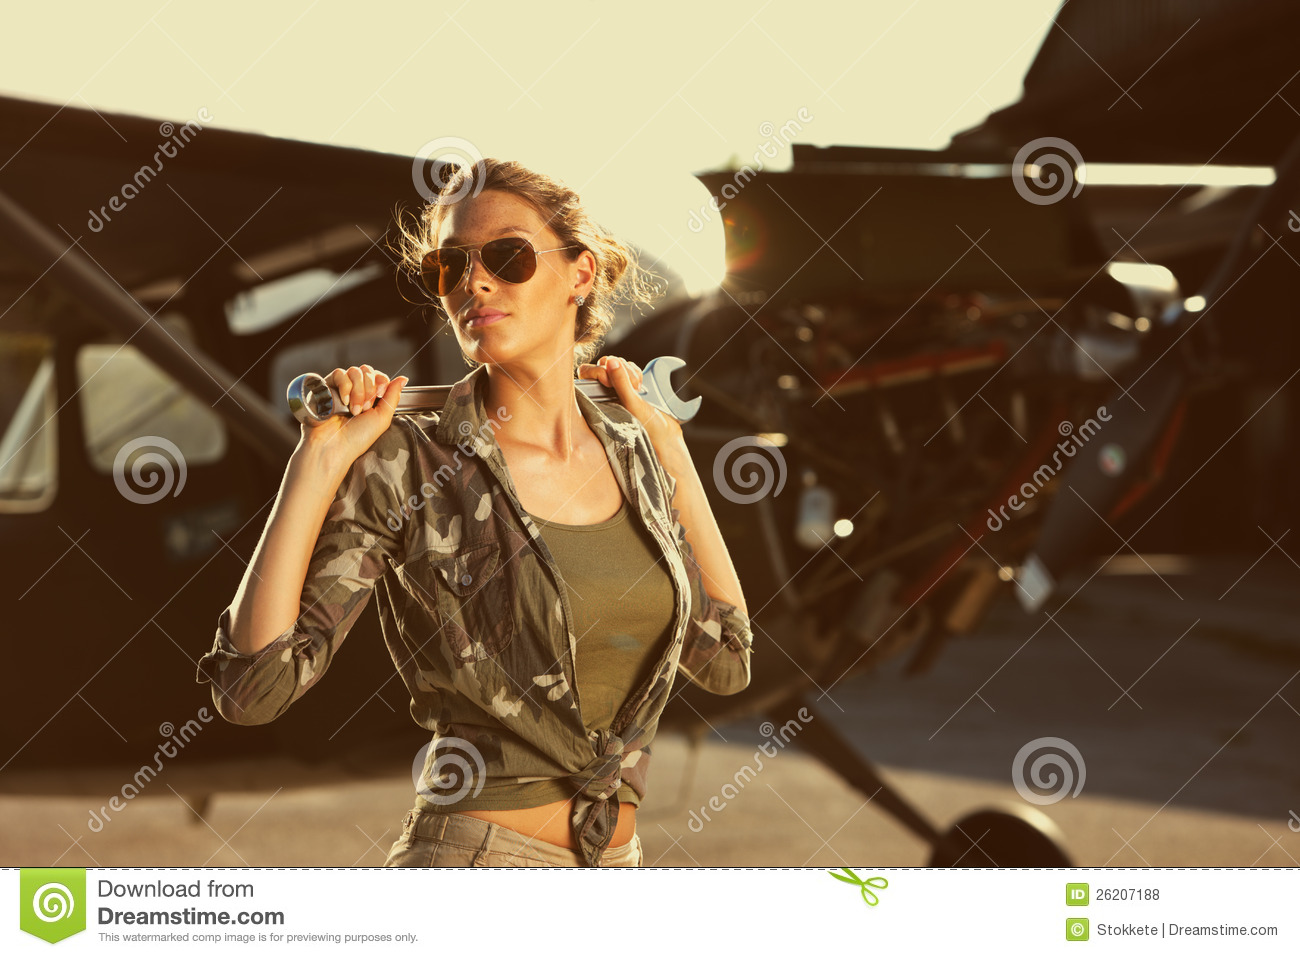 Woman airplane mechanic. Airplane on the background.